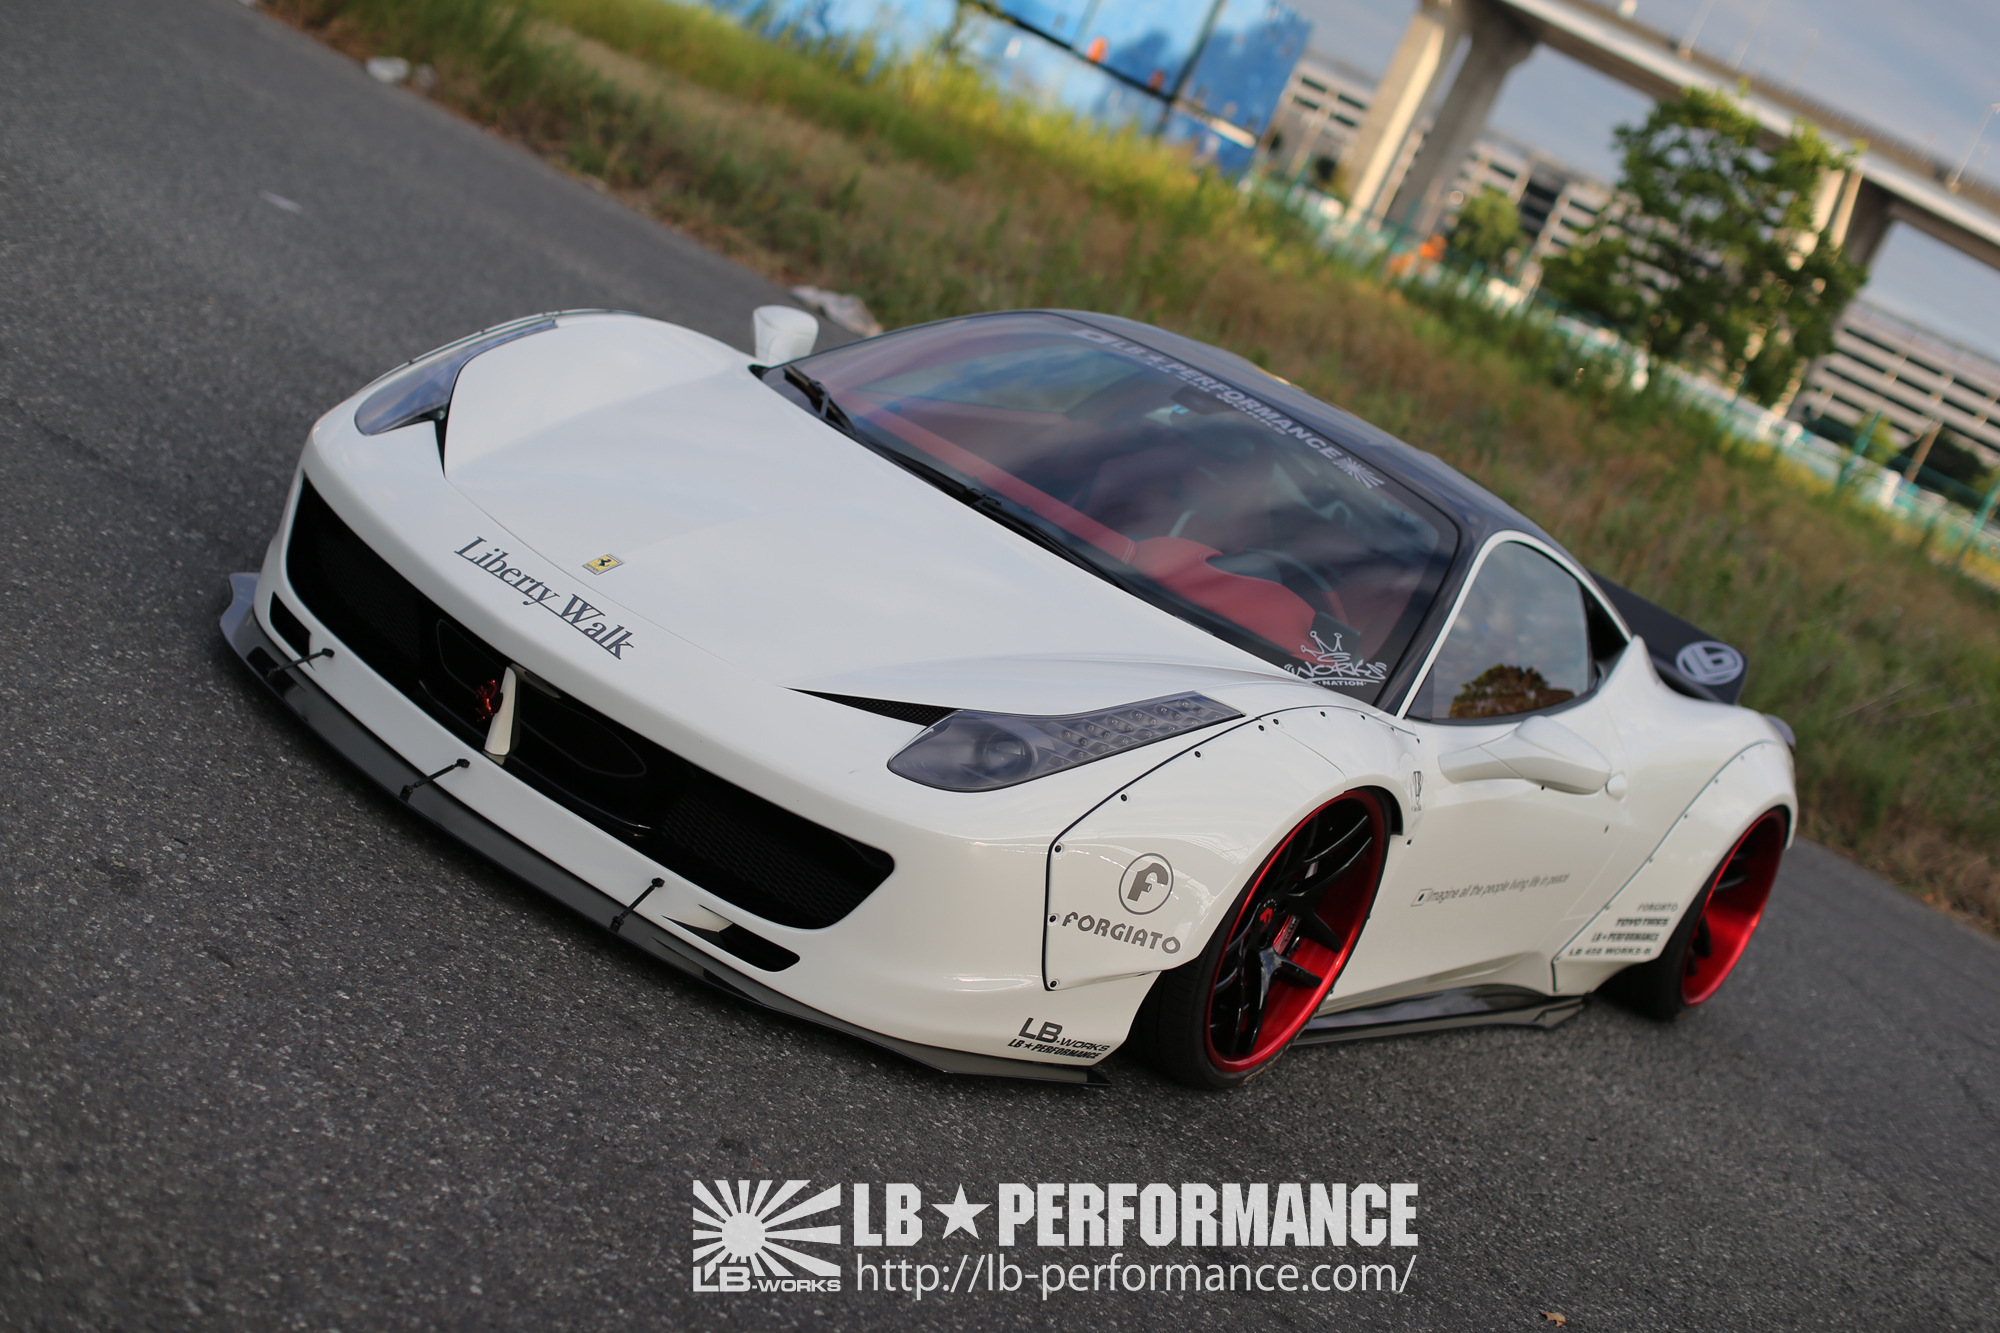 IMG_1010-1 LB-WORKS 458